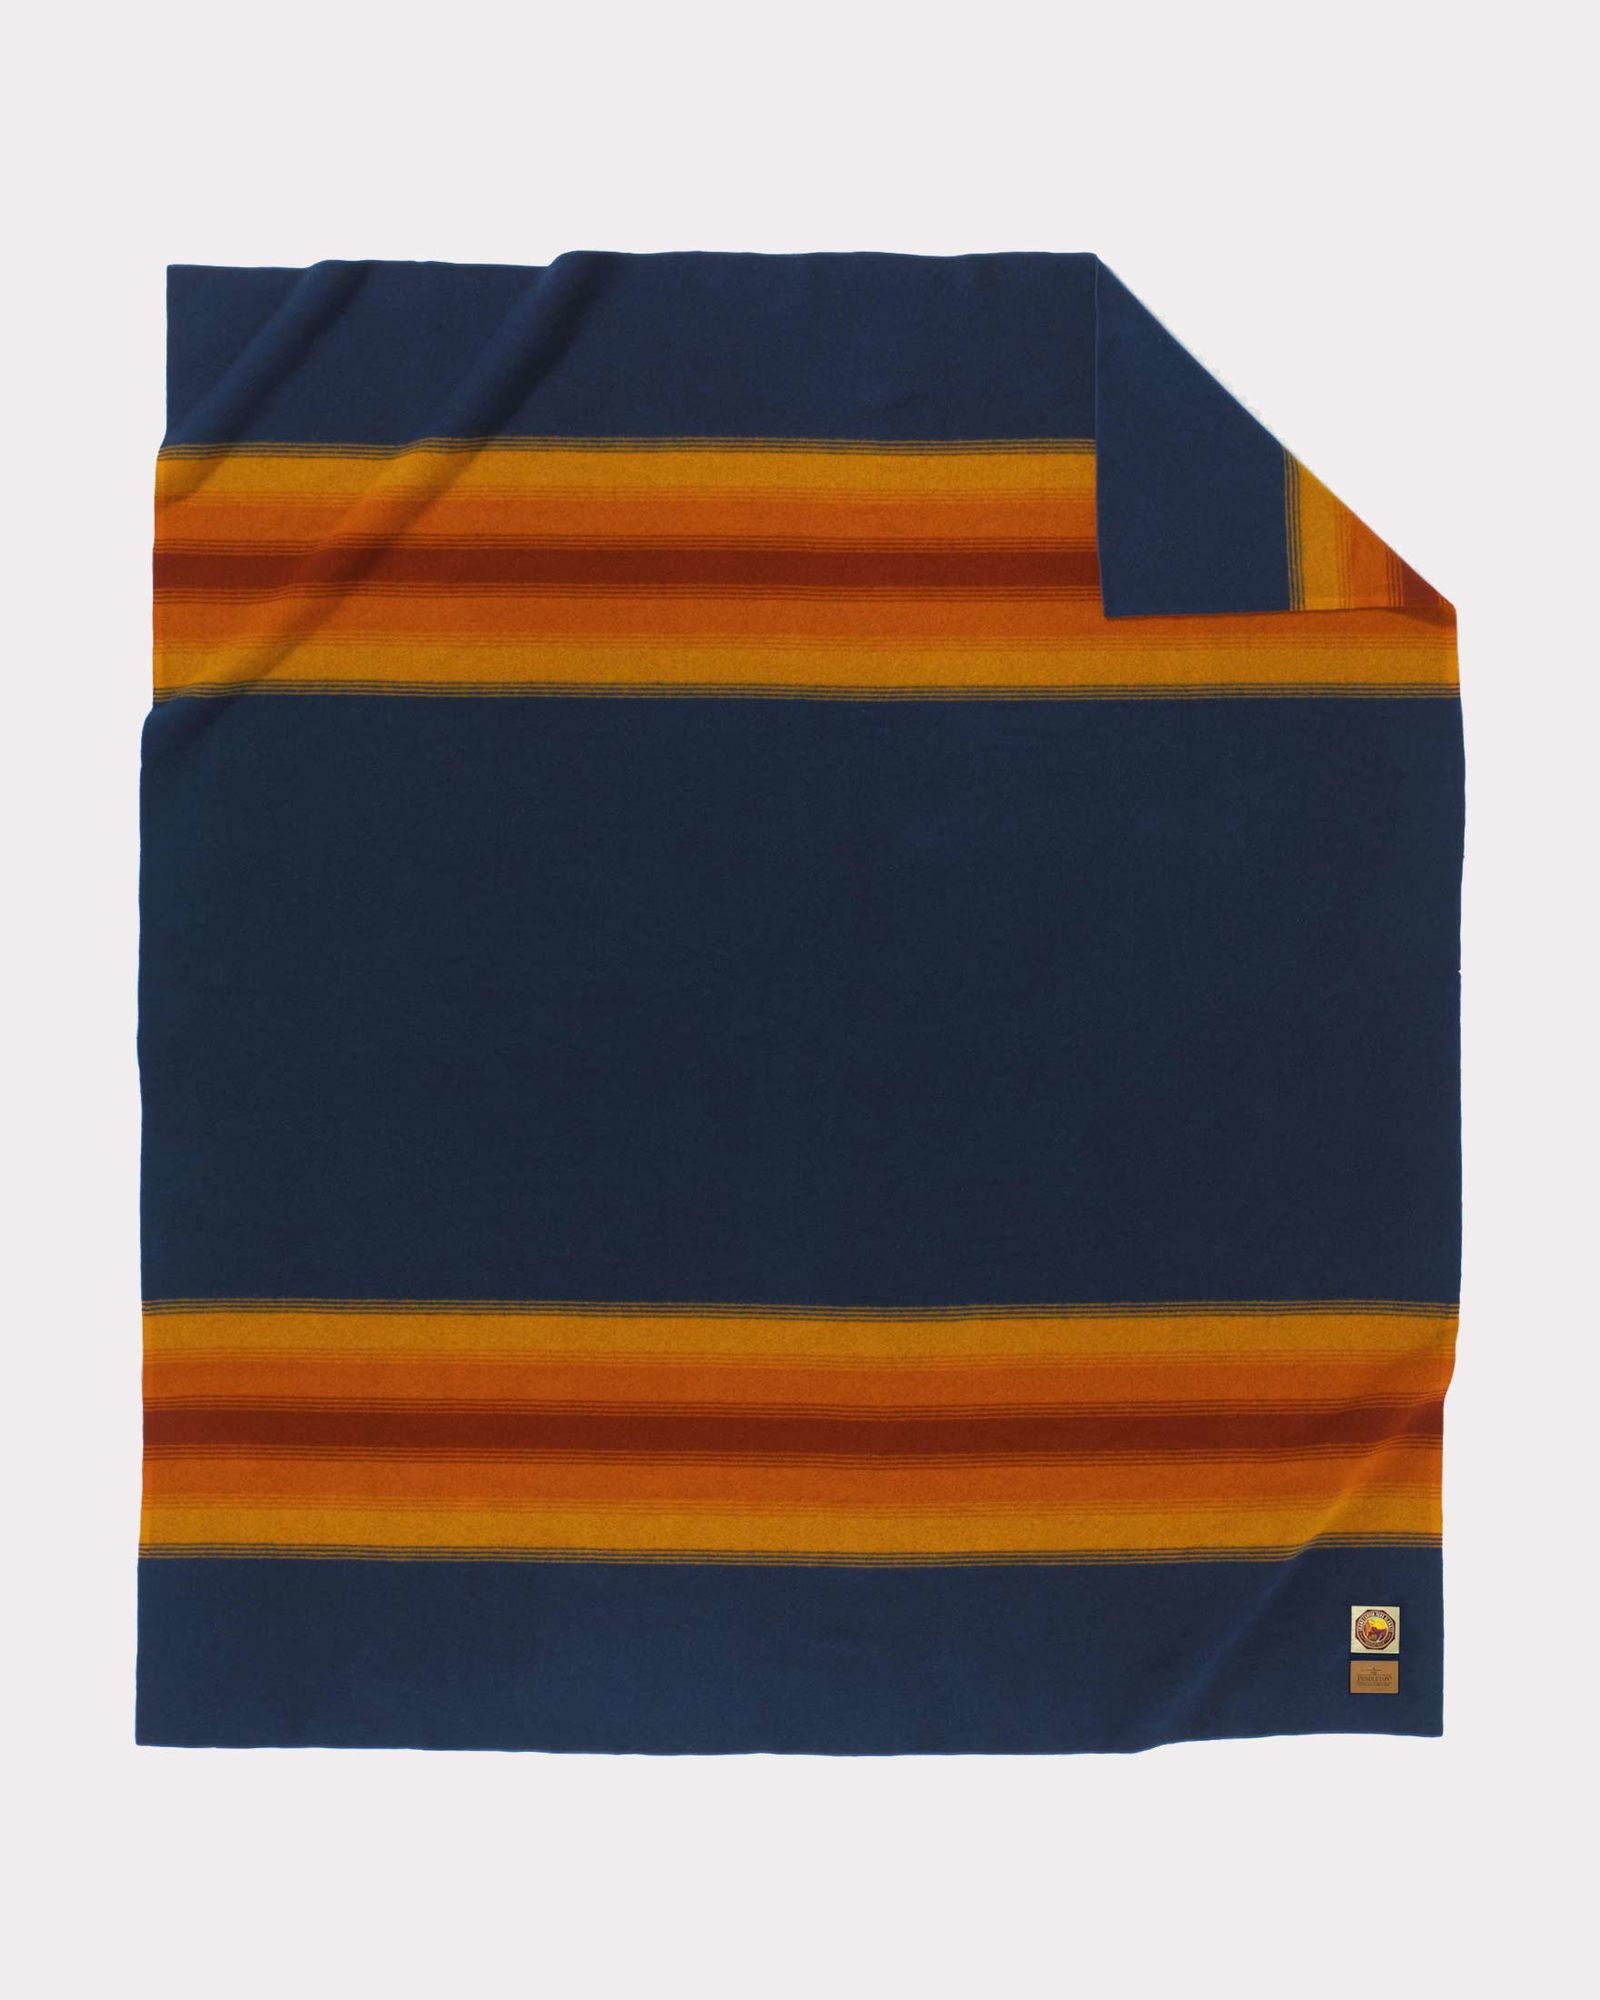 The Pendleton Grand Canyon blanket